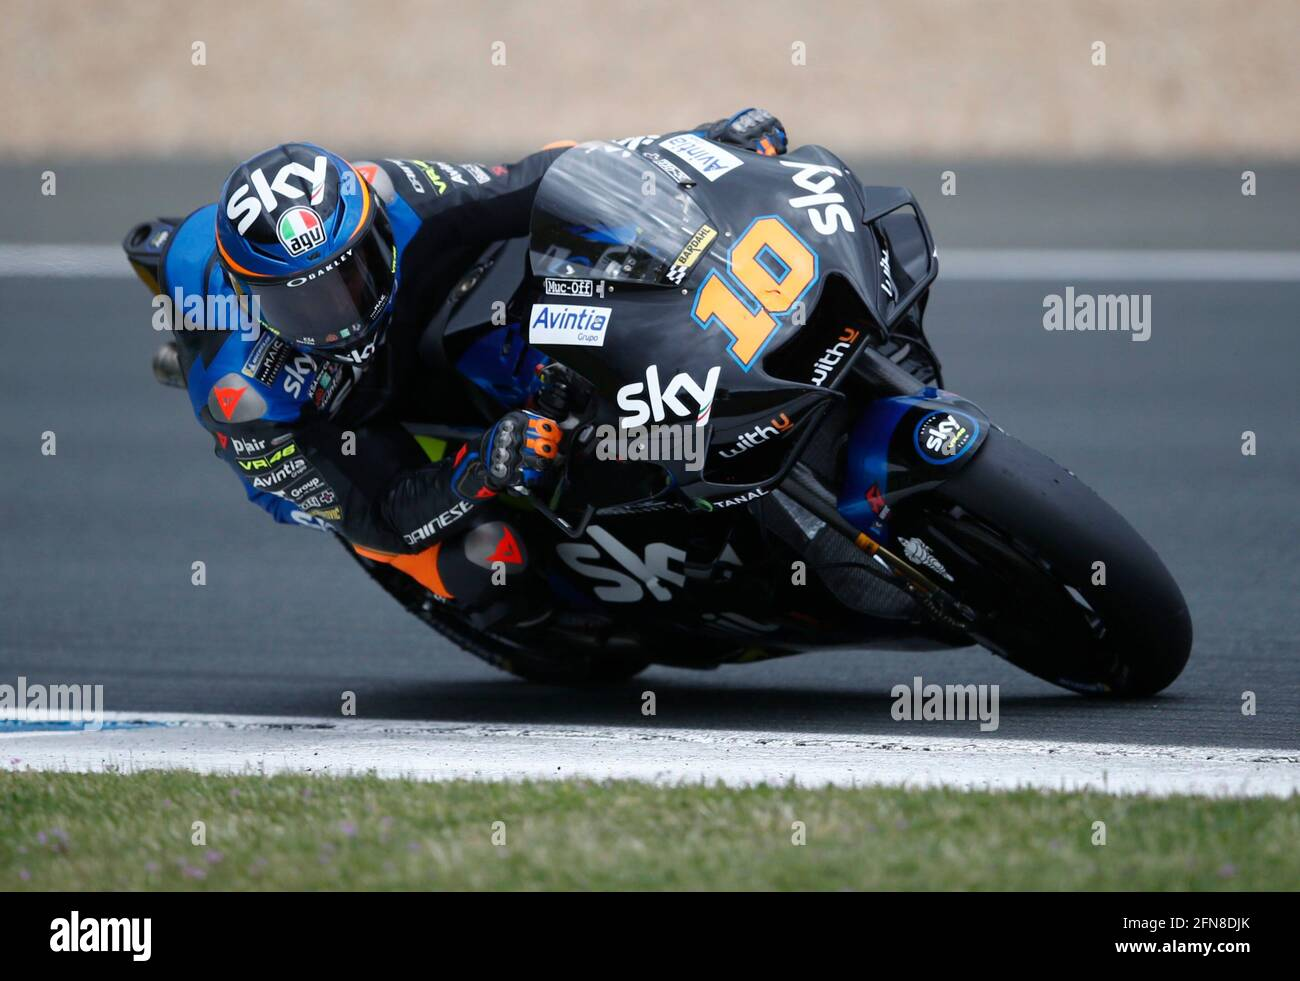 Sky Vr46 High Resolution Stock Photography And Images Alamy